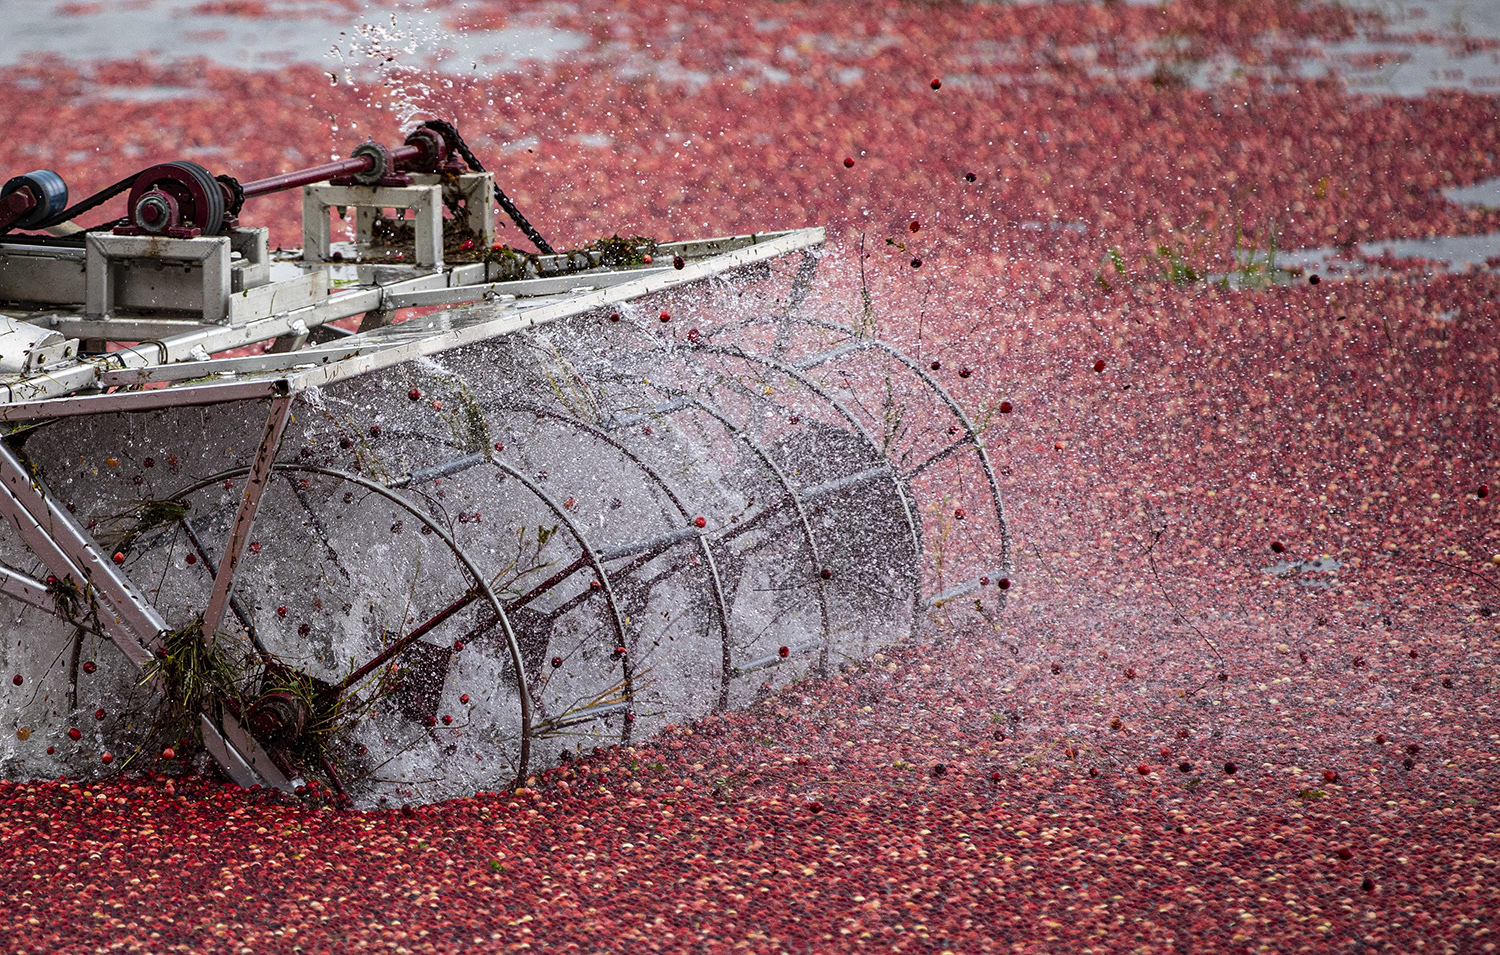 The beater pulls the cranberries off the vines.